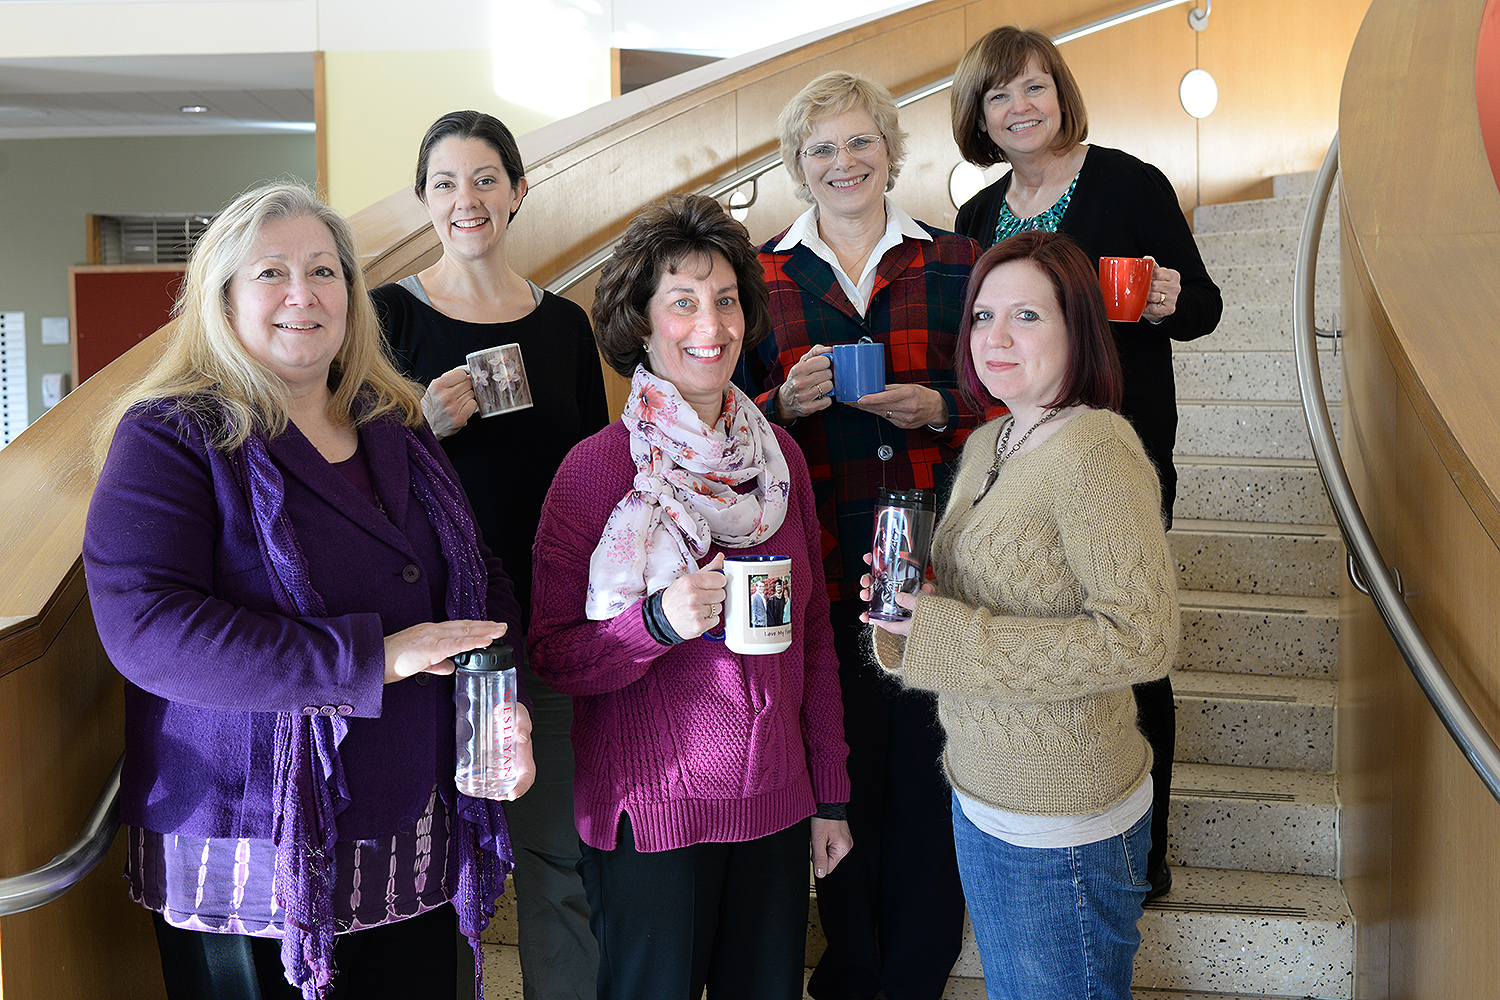 Current Green Team members, pictured here holding their reusable mugs, include, from left, Roslyn Carrier-Brault, Chemistry Department; Dawn Alger, Theater Department; Valerie Marinelli, College of the Environment; Liz Tinker, English Department; Anika Dane, Molecular Biology and Biochemistry Department; and Blanche Meslin, Biology Department.